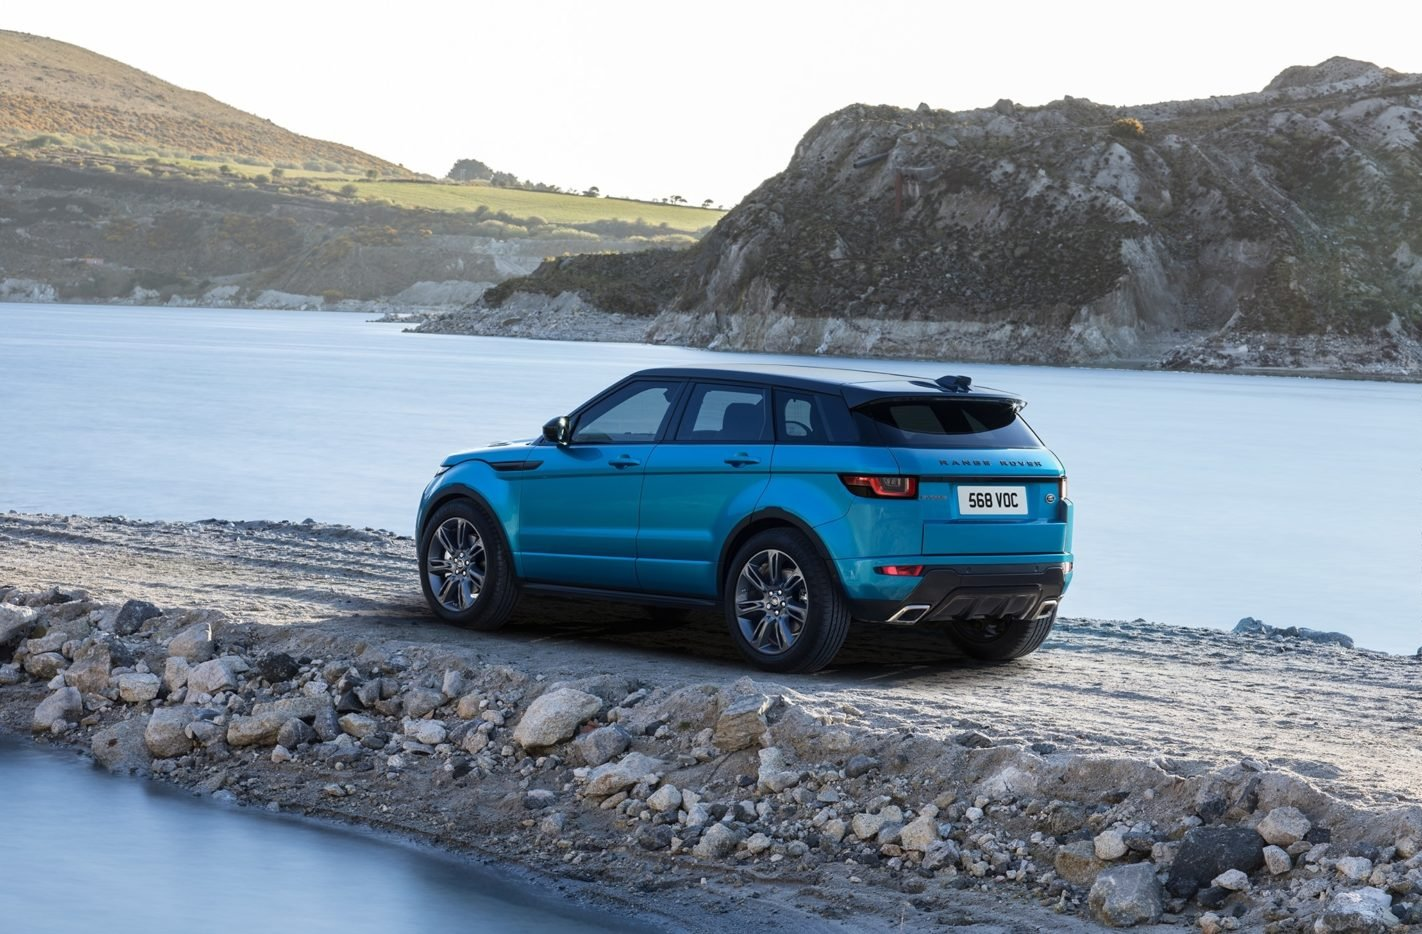 2019 Range Rover Evoque Front Wallpaper Auto Car Rumors 1422x934